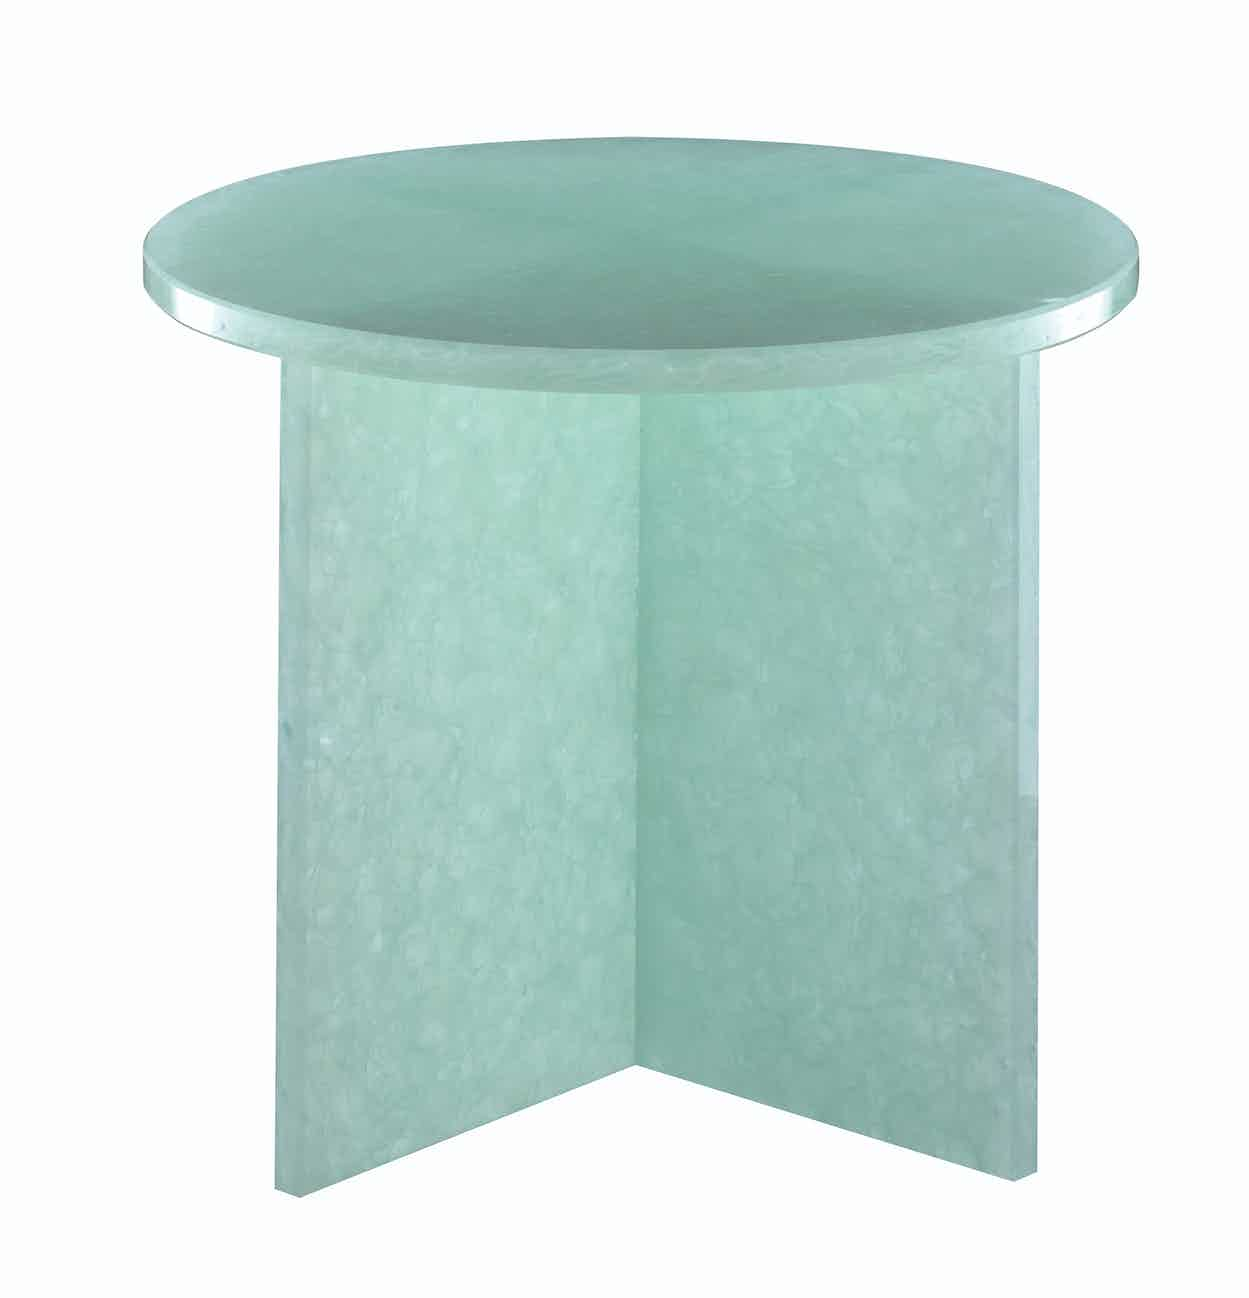 Pulpo font table round small green haute living